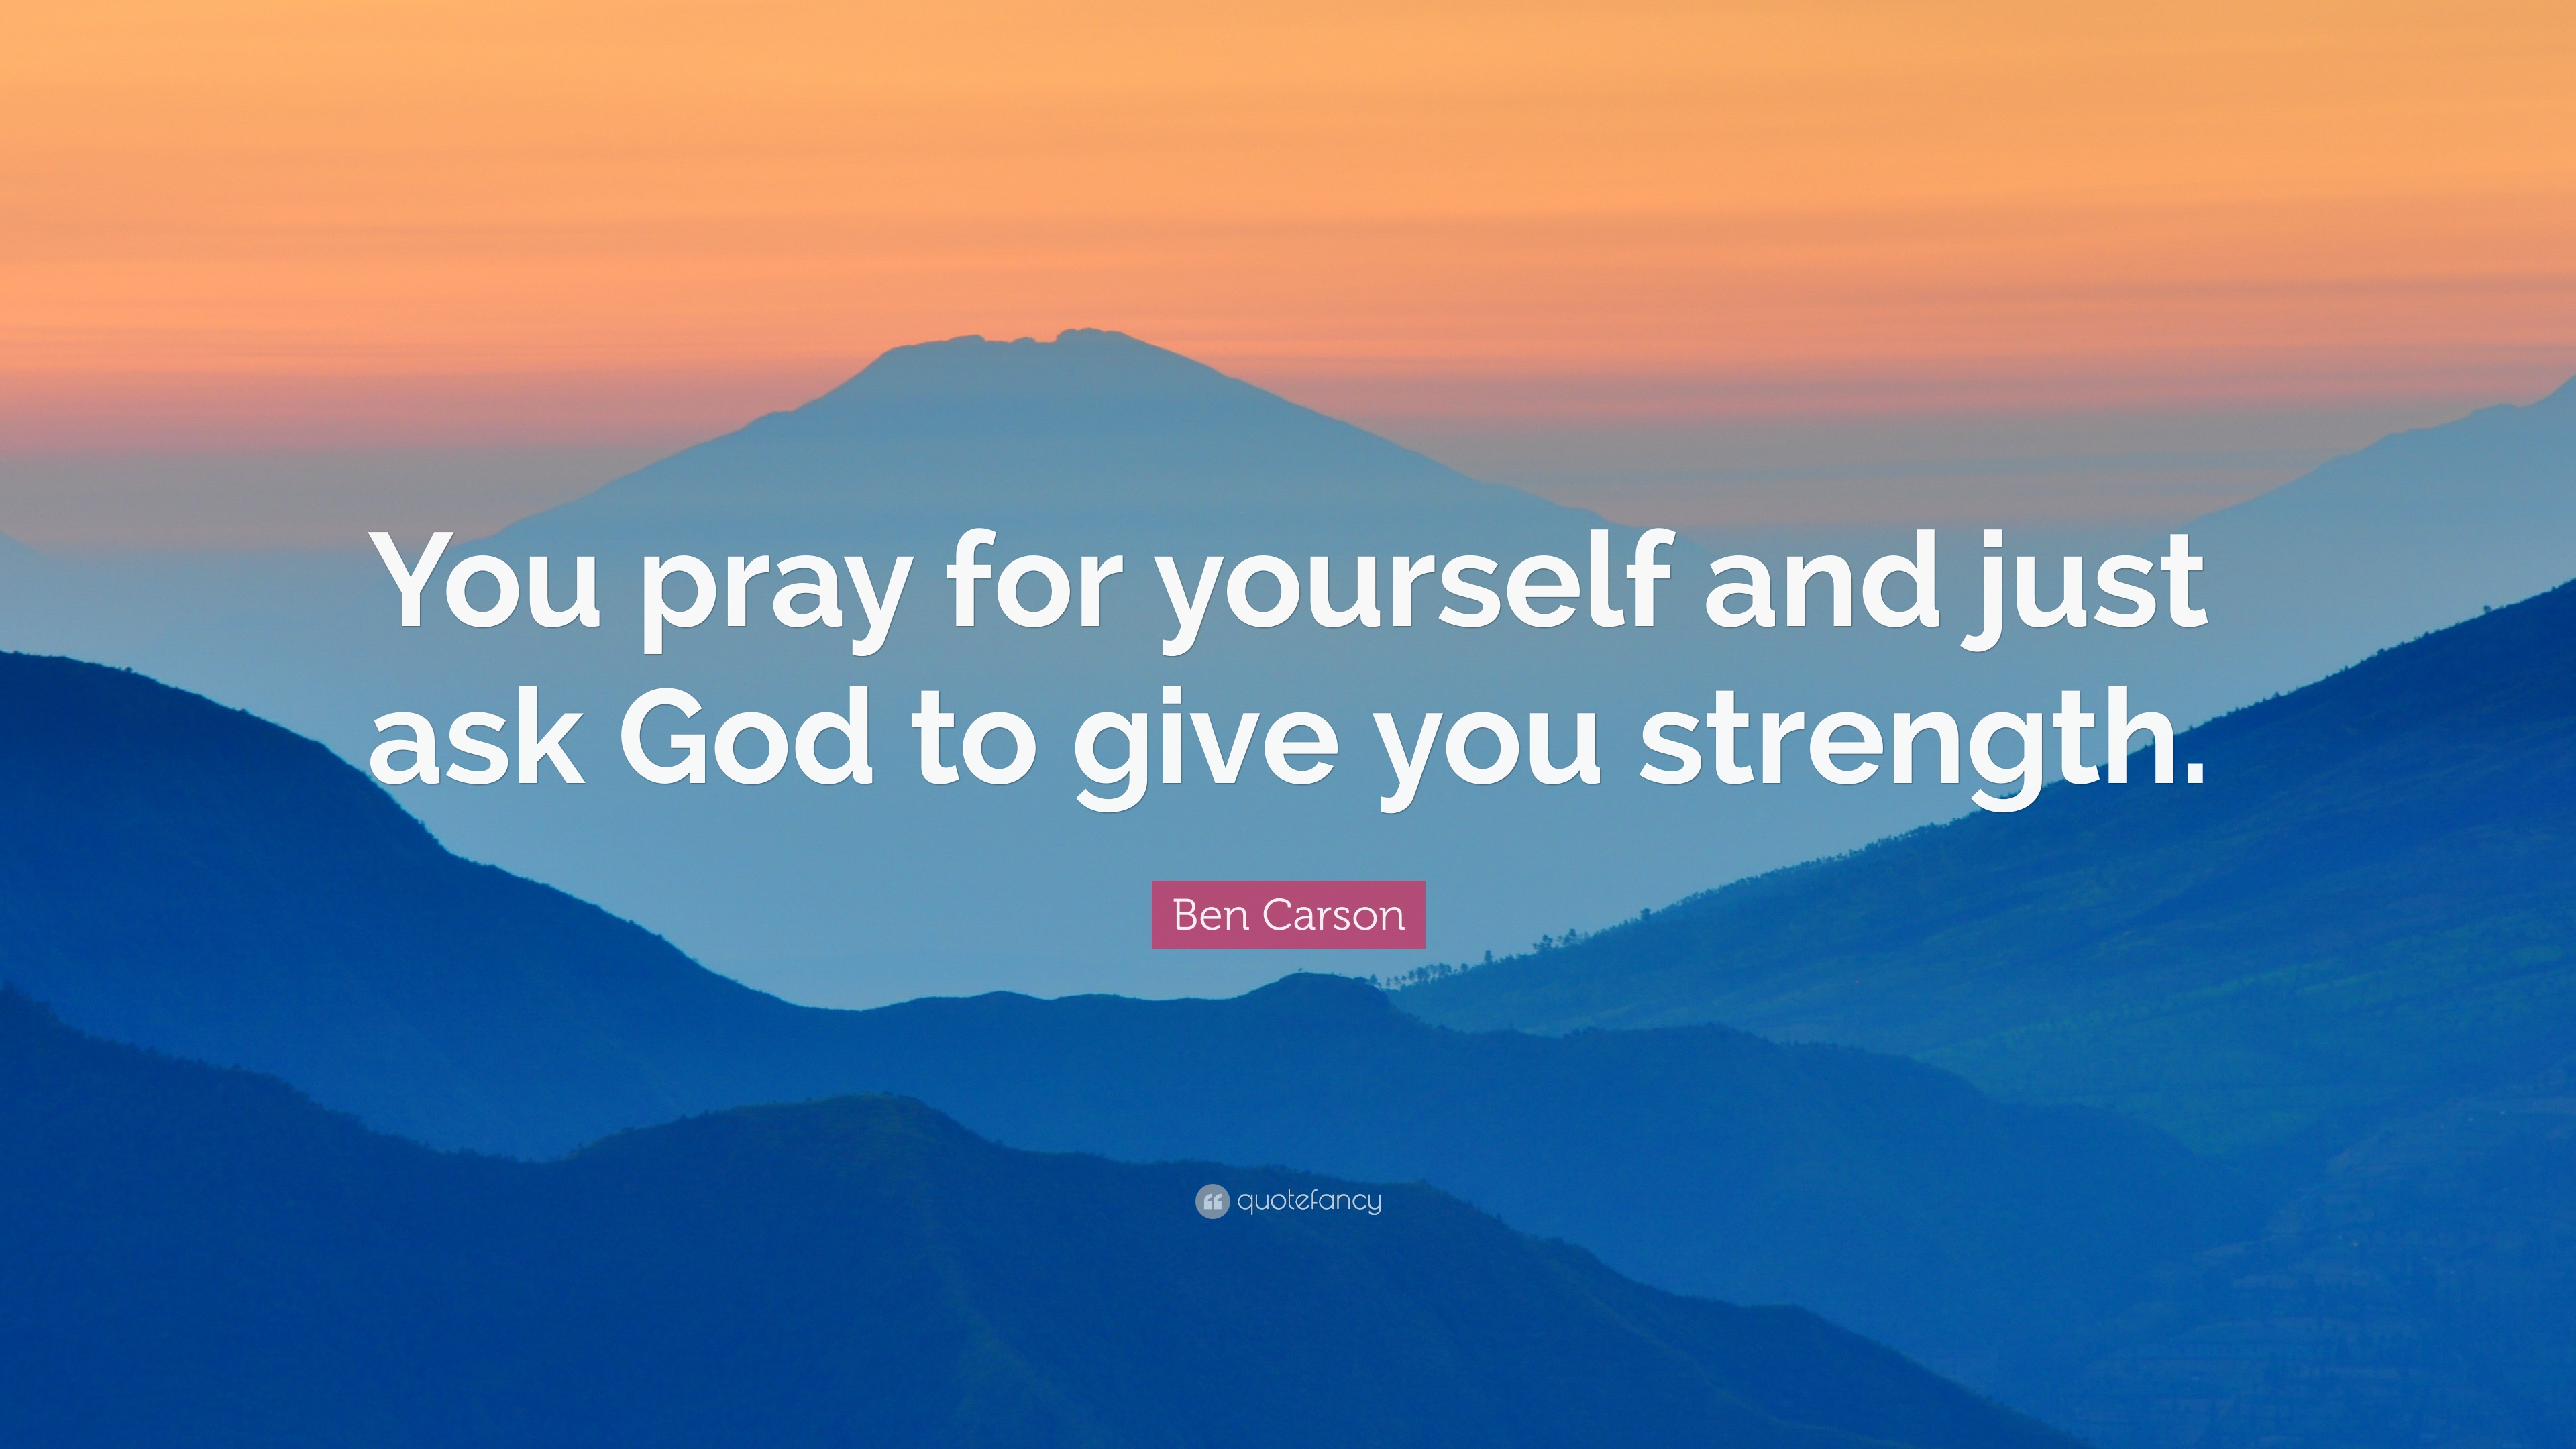 Ben Carson Quote You Pray For Yourself And Just Ask God To Give